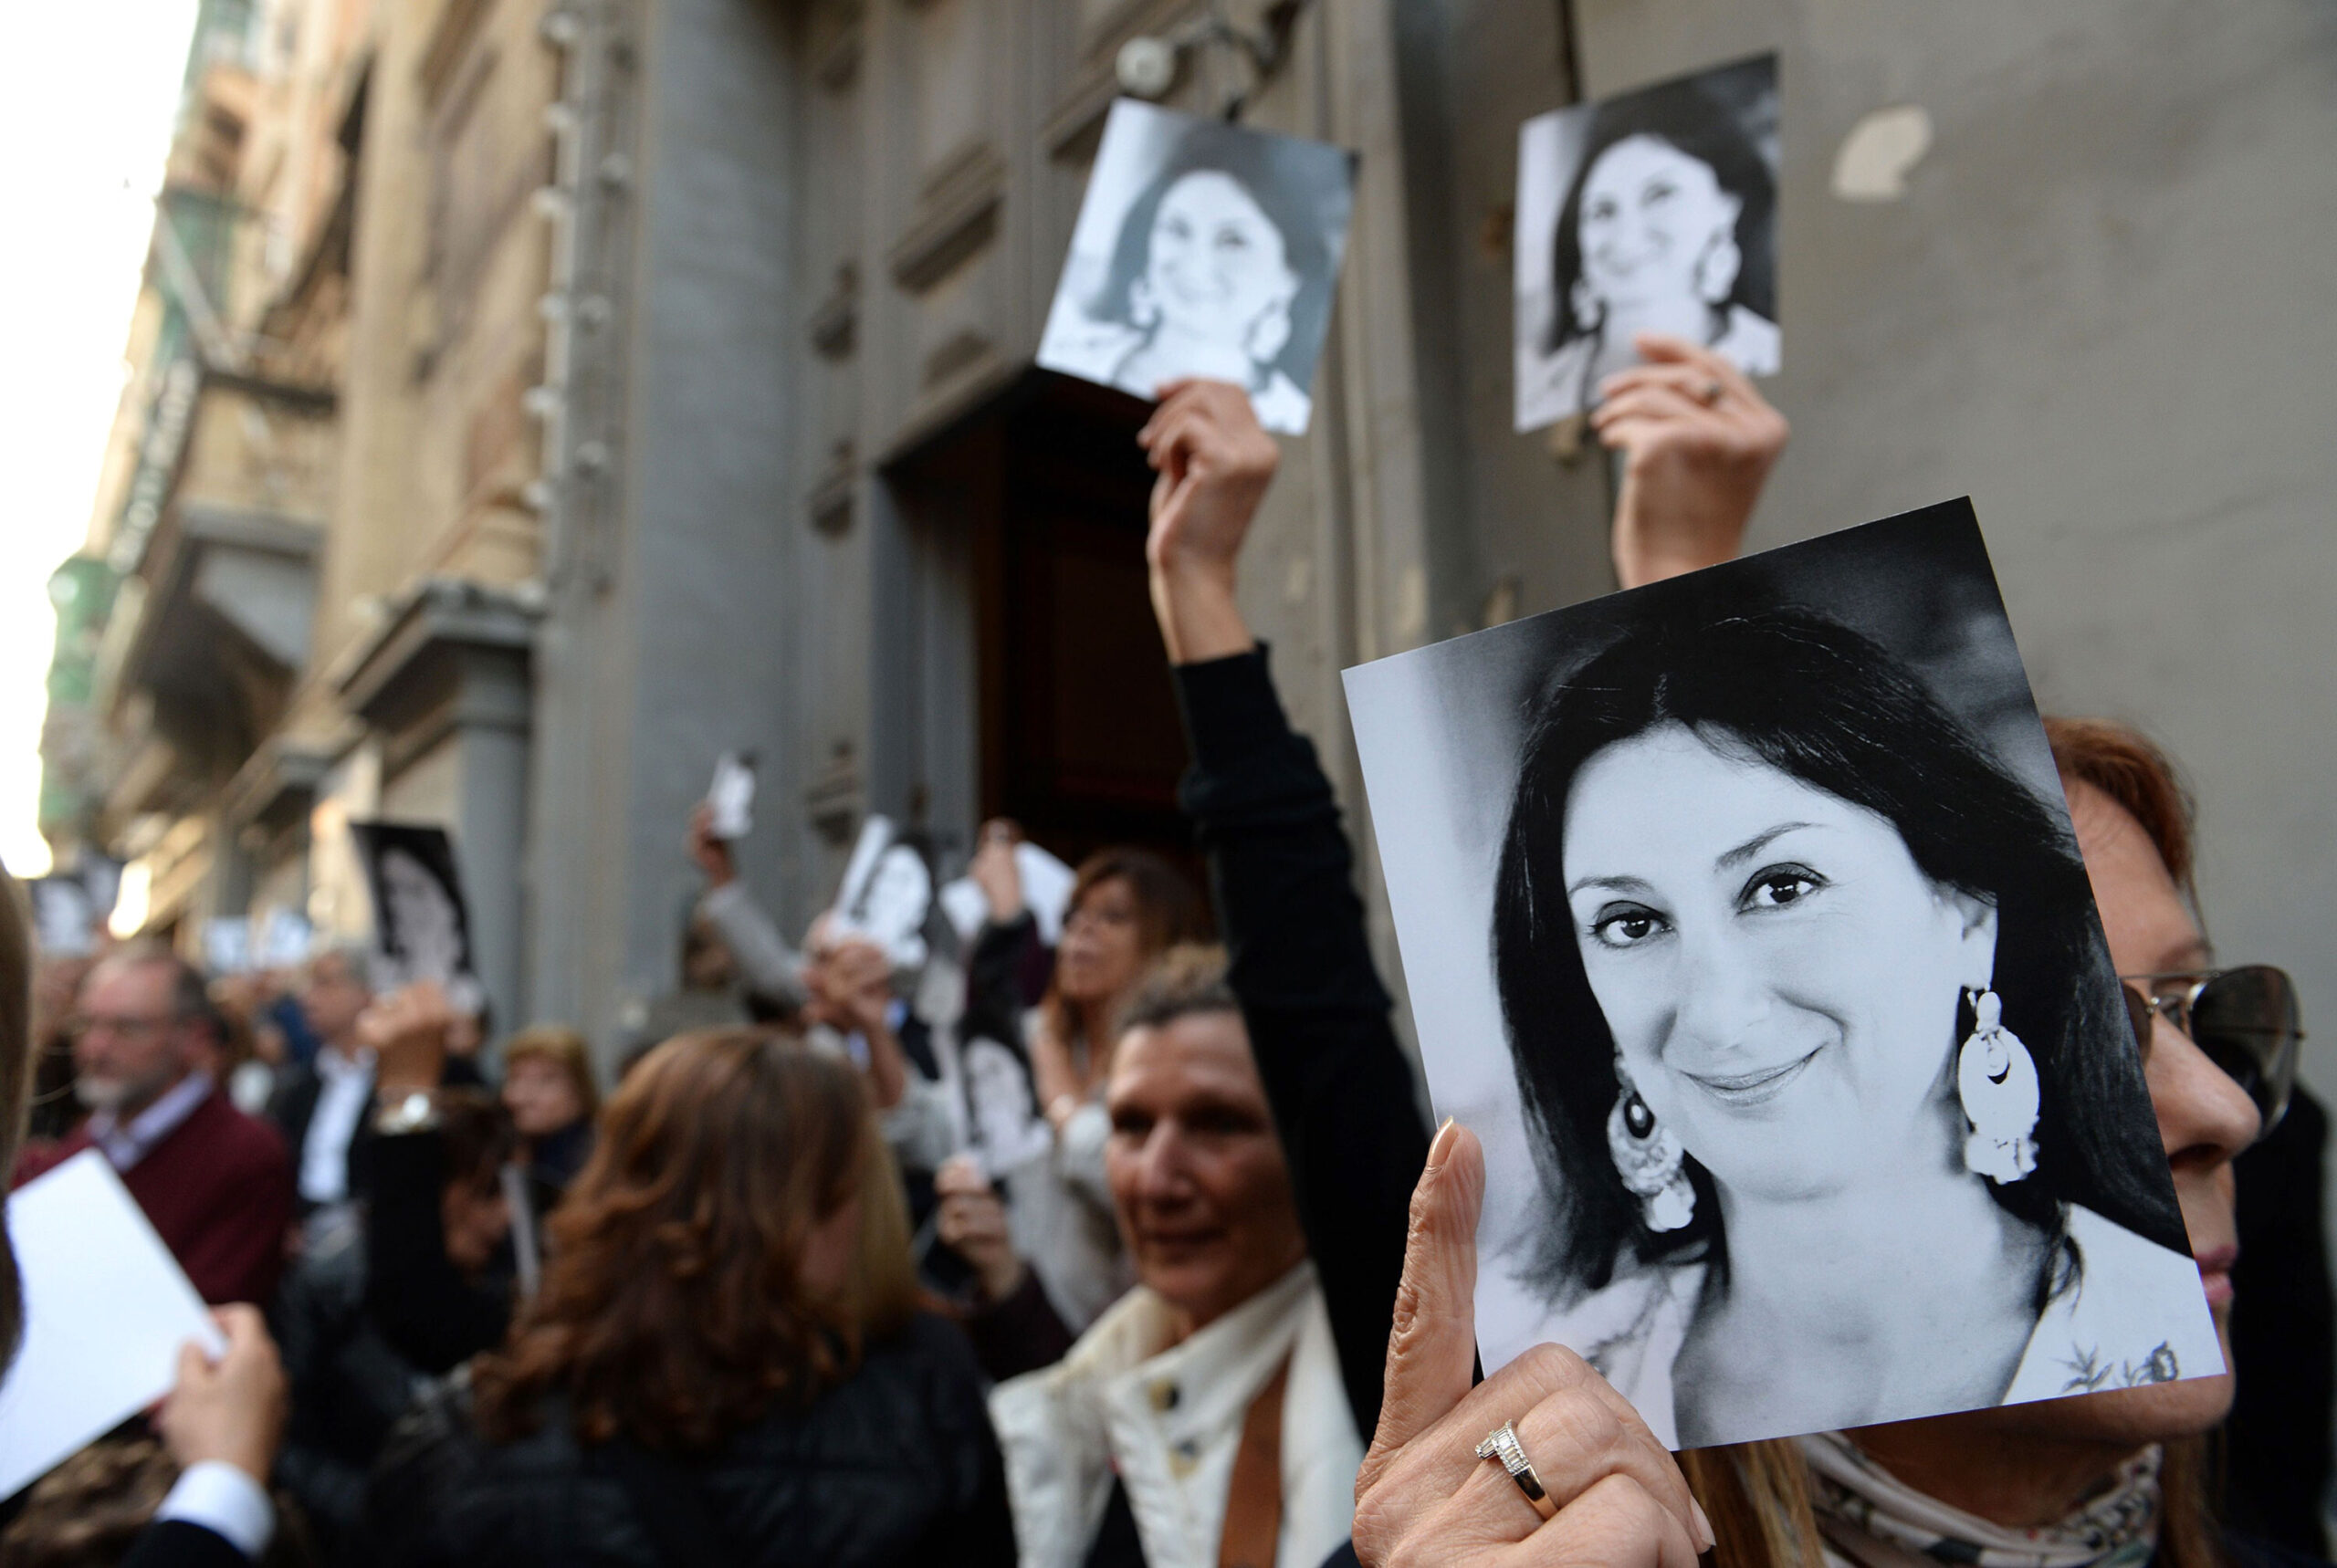 <i>Matthew Mirabelli/AFP/Getty Images</i><br/>Malta's government must bear responsibility for creating an